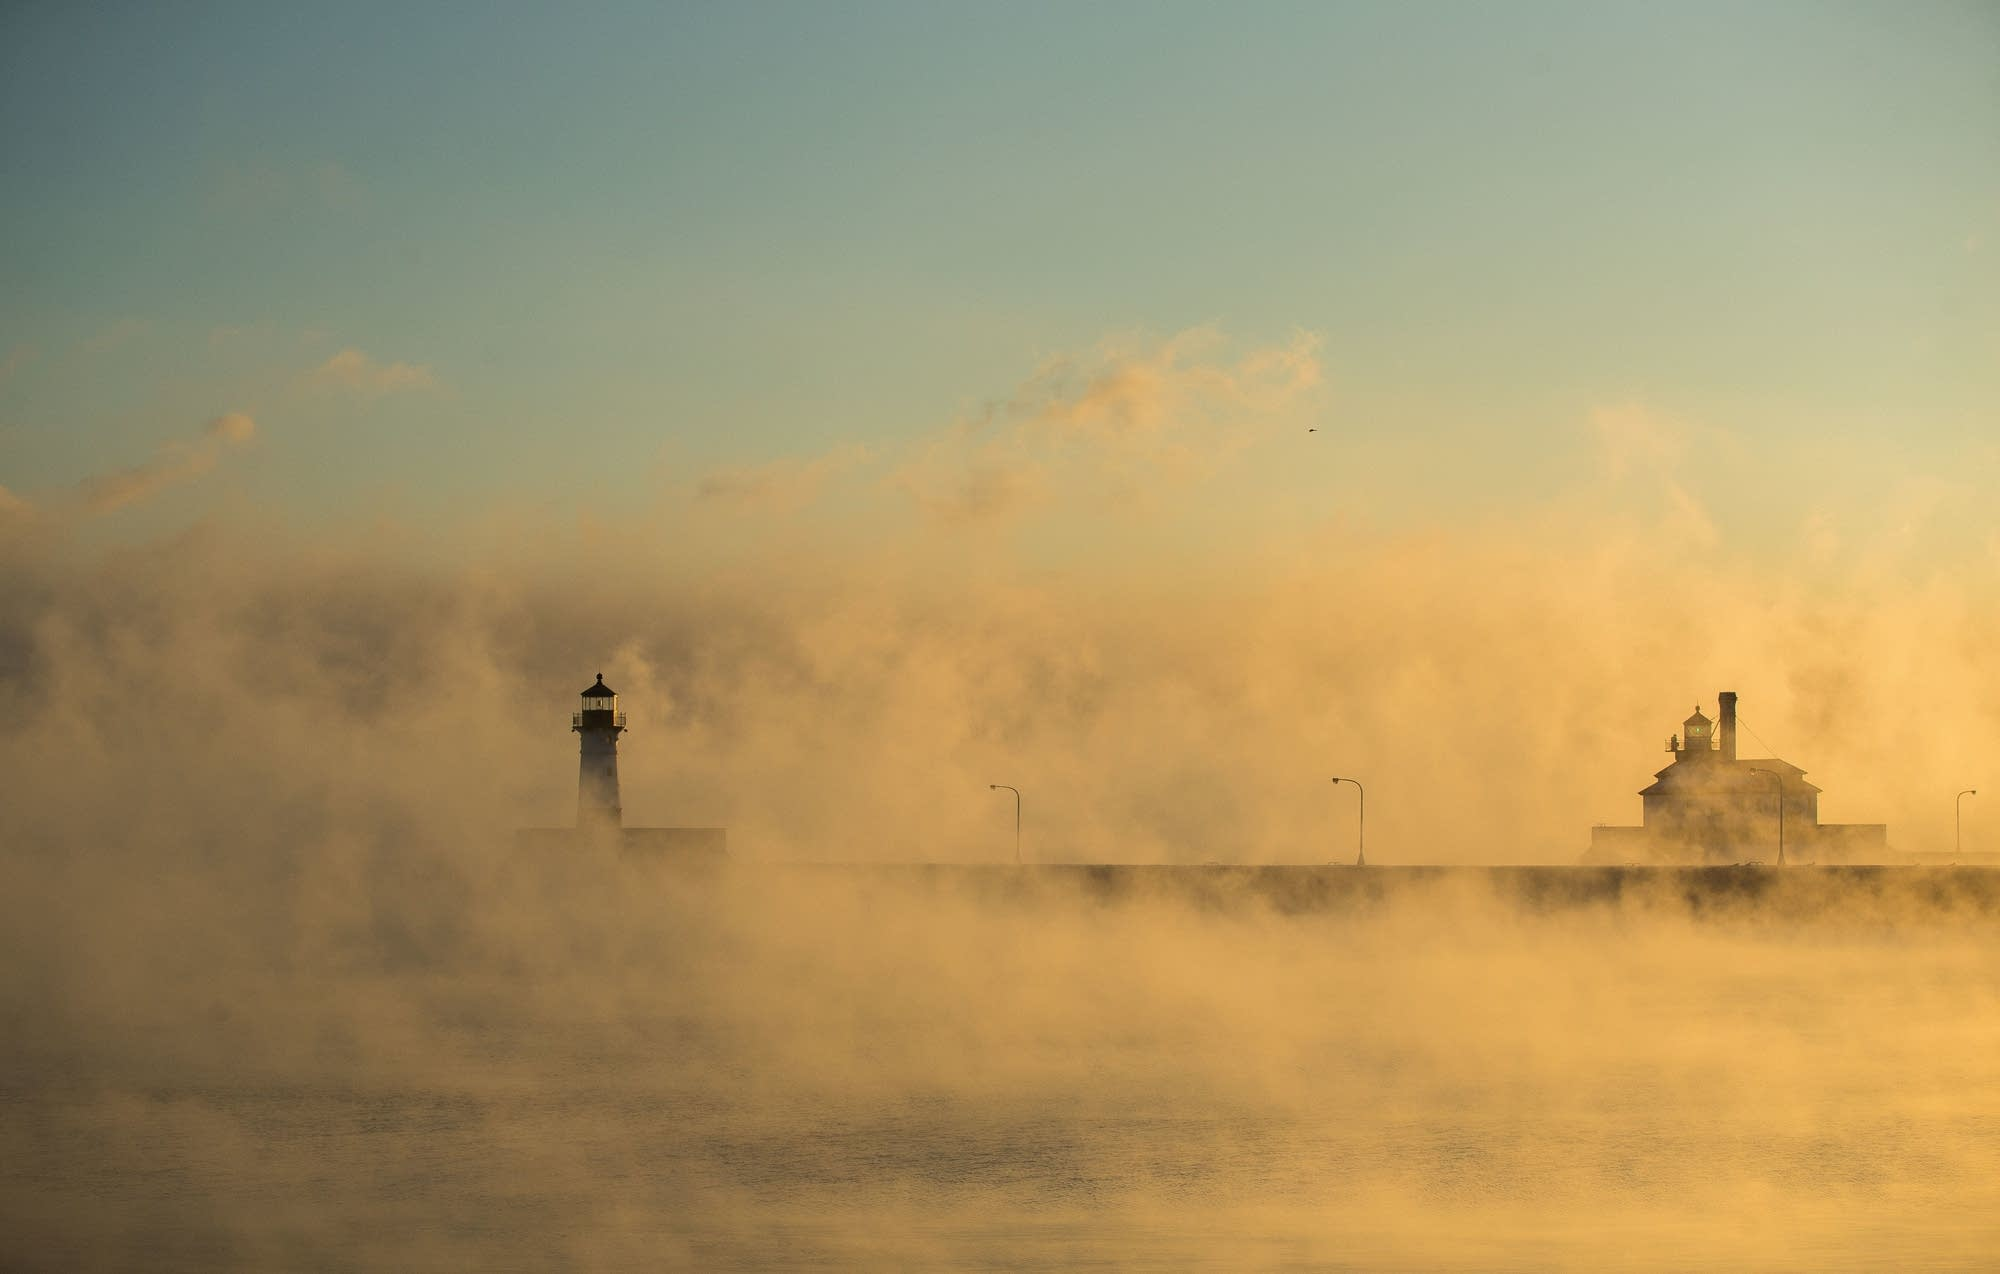 Sea smoke rises over the North Pier and the South Breakwater Outer Lights.